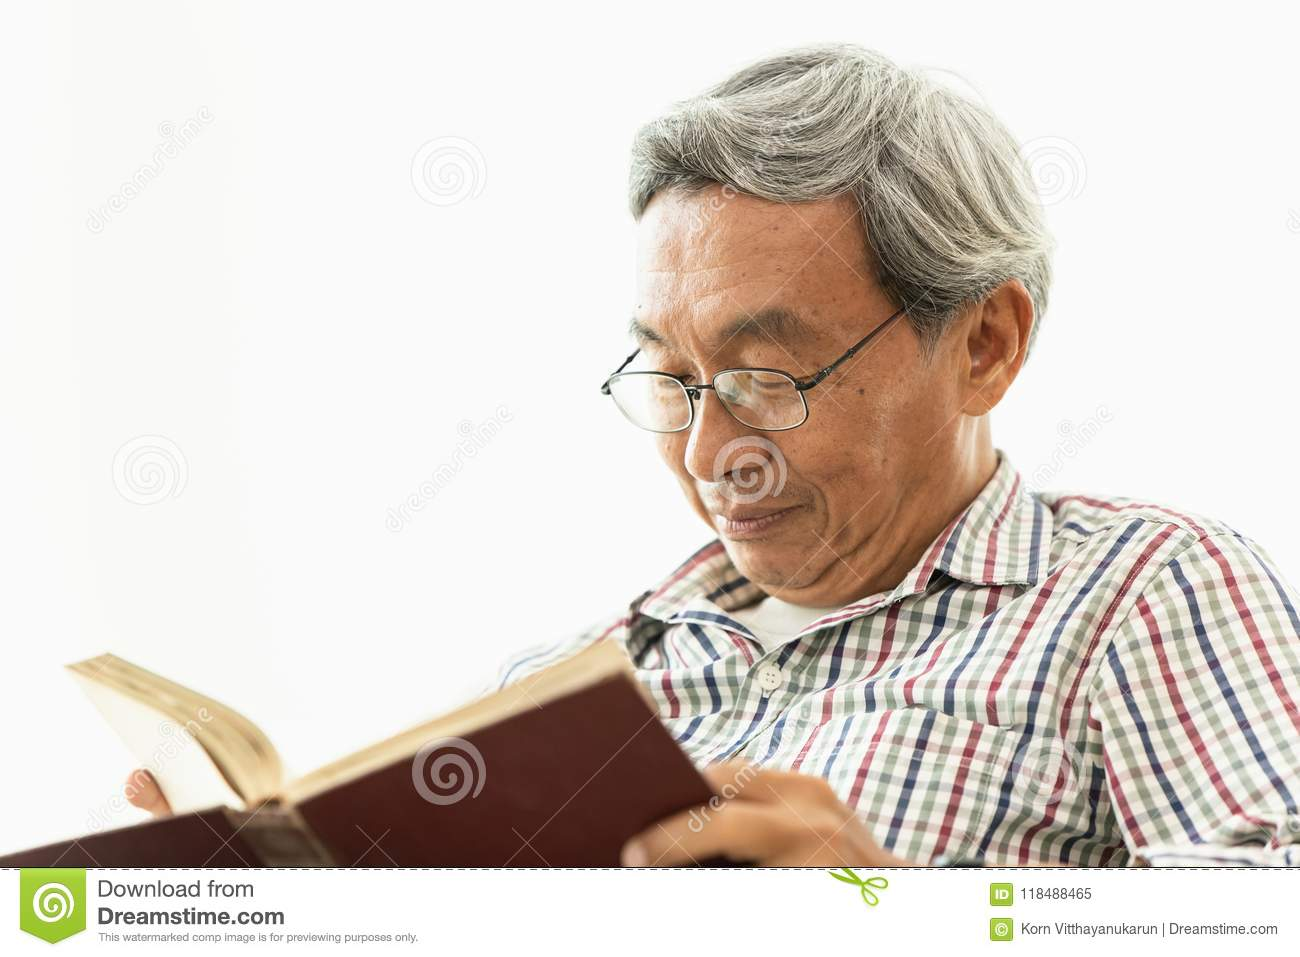 Asian Old Man Glasses Professor Amile Reading Textbook Stock Image - Image  of asian, asia: 118488465